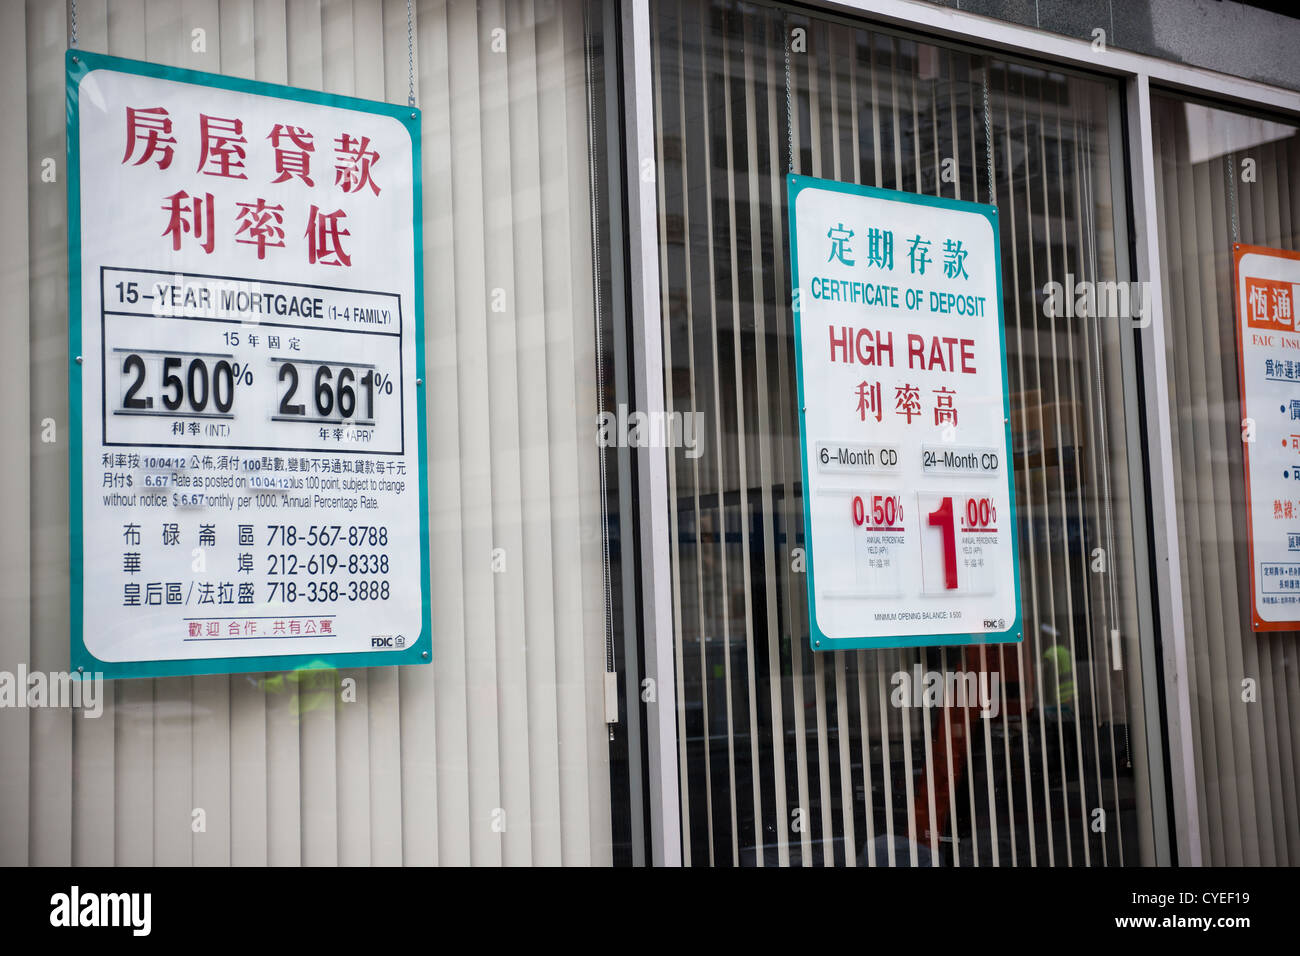 Interest rates for mortgages and certificates of deposit are seen interest rates for mortgages and certificates of deposit are seen in the window of a bank in chinatown in new york xflitez Images